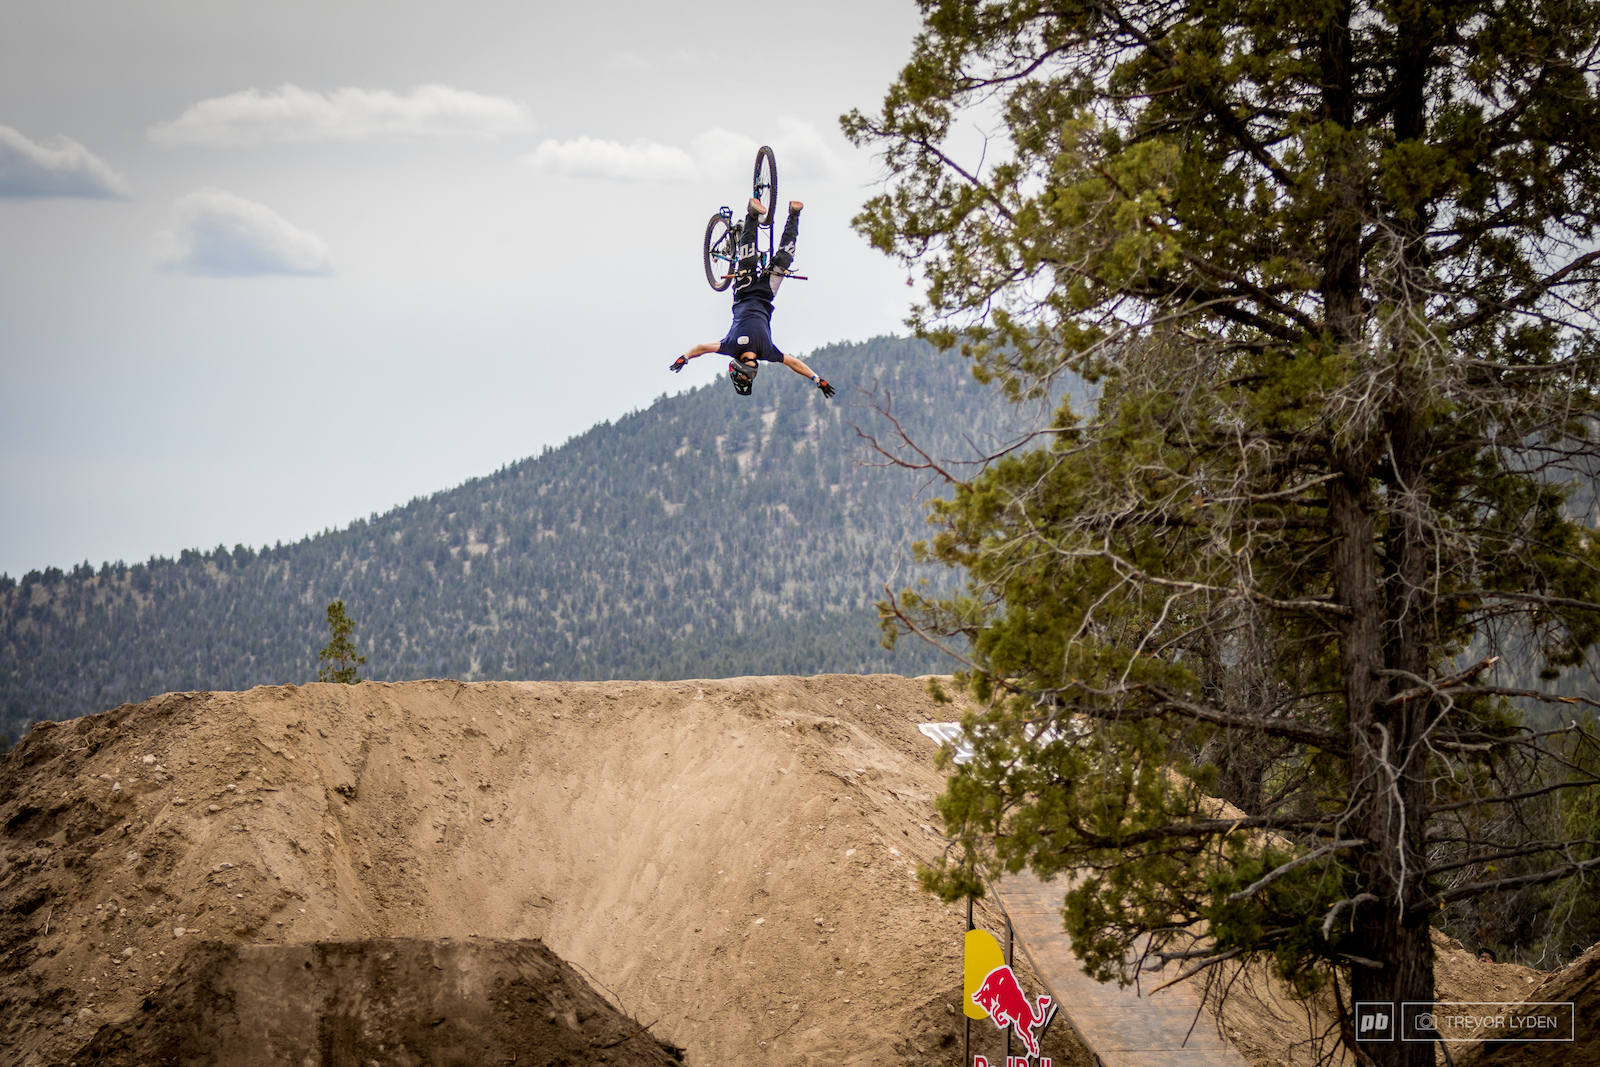 We re more familiar with watching Dusty ride various contraptions on the Nitro Circus tour but he reminded us all that he can hang with the best freeriders too.